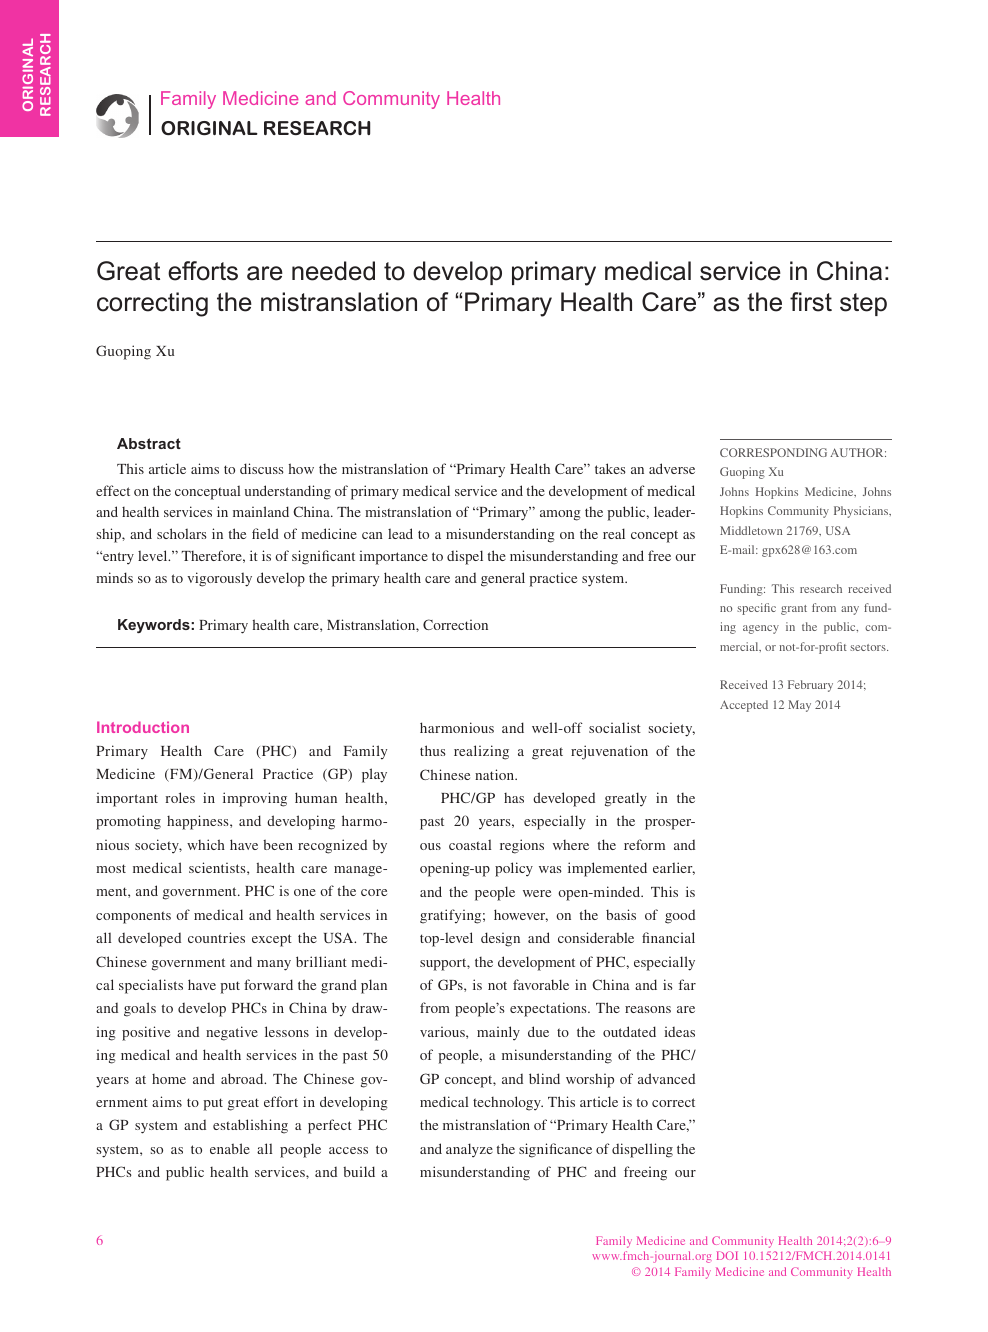 Great efforts are needed to develop primary medical service in China